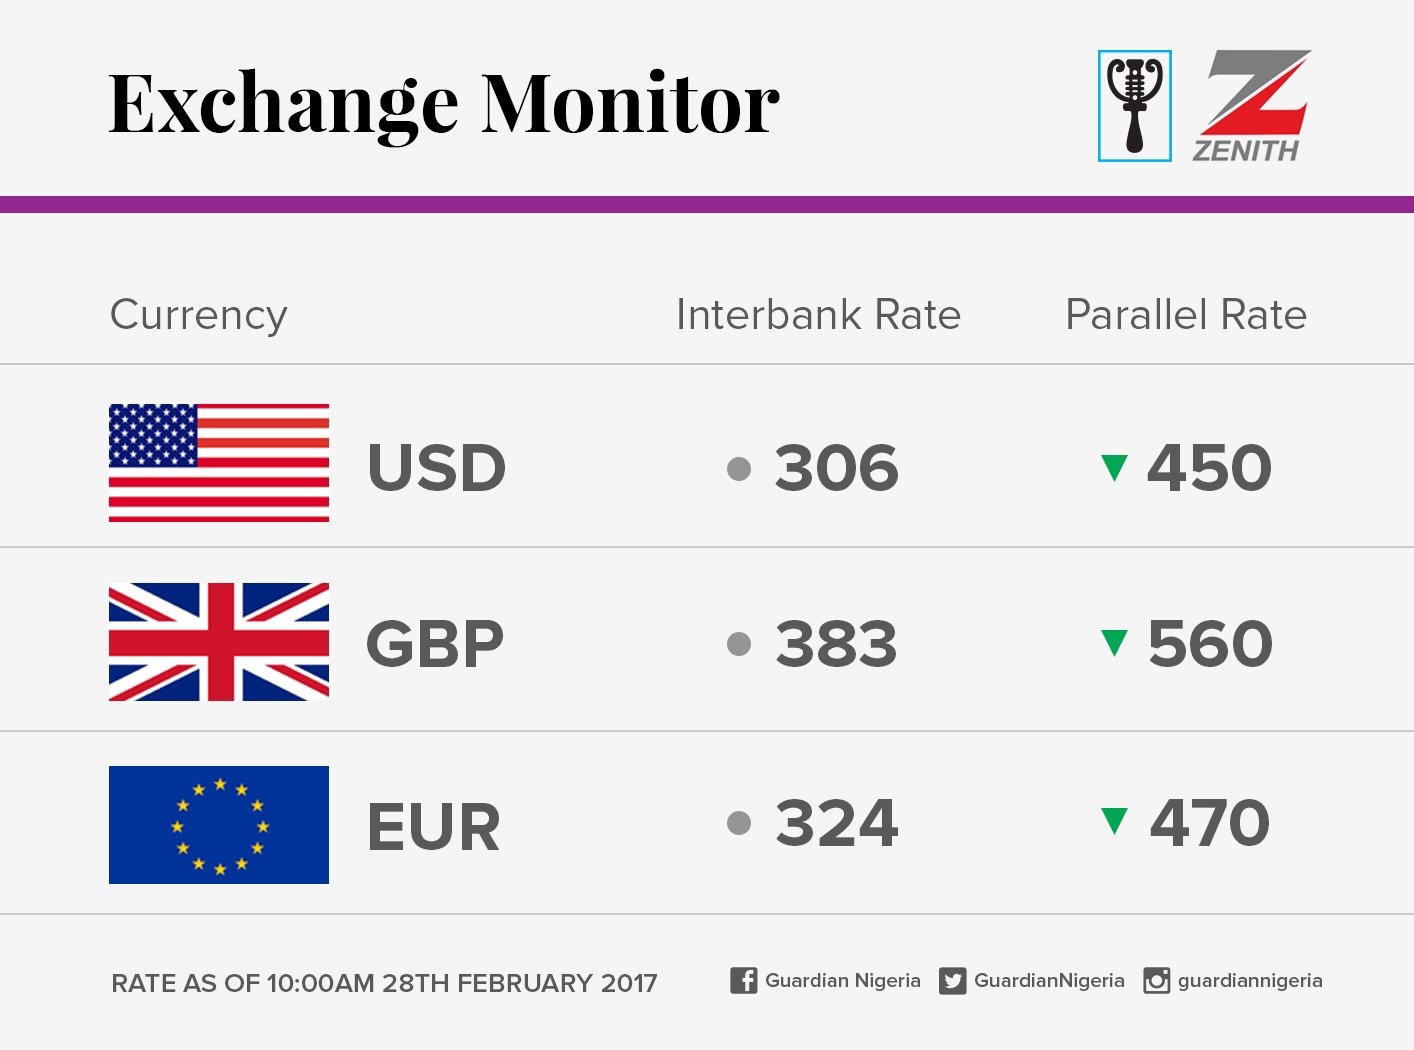 Exchange Rate For 28th February 2017